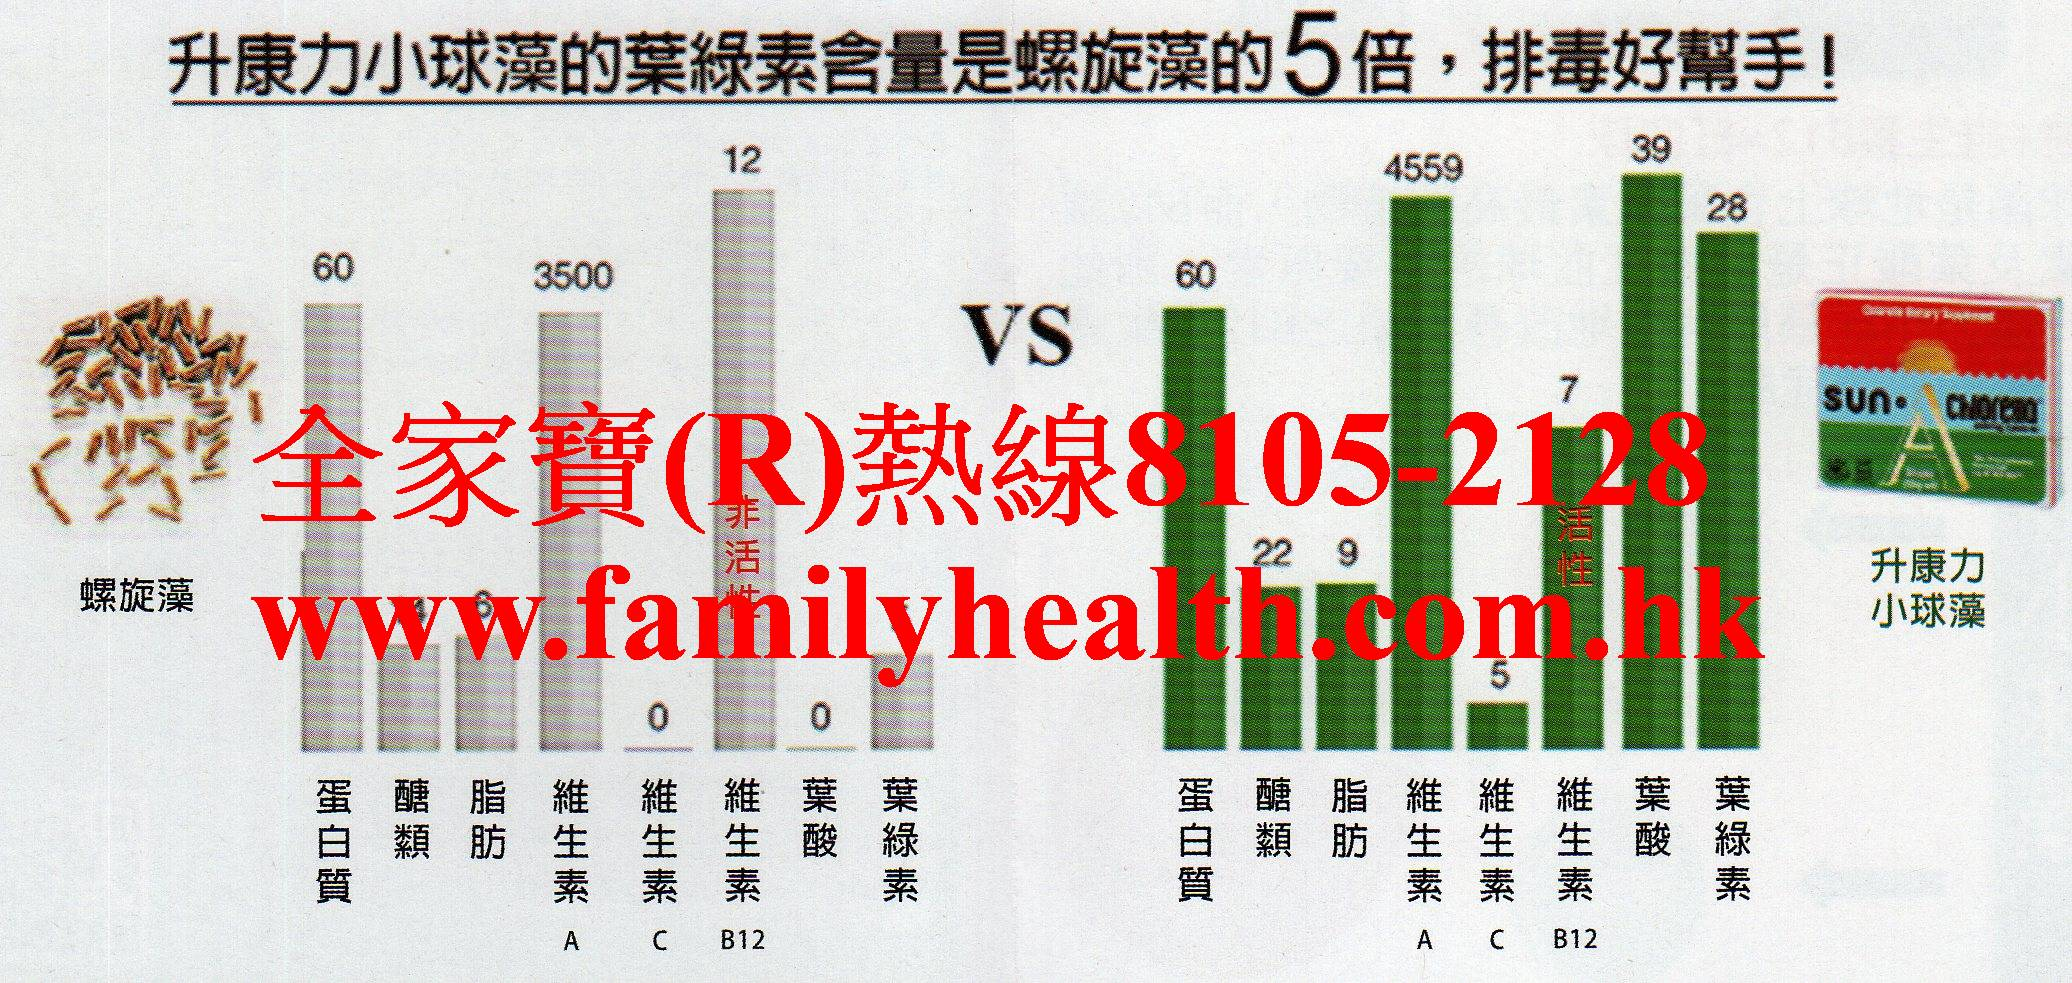 http://www.familyhealth.com.hk/files/full/1020_3.jpg